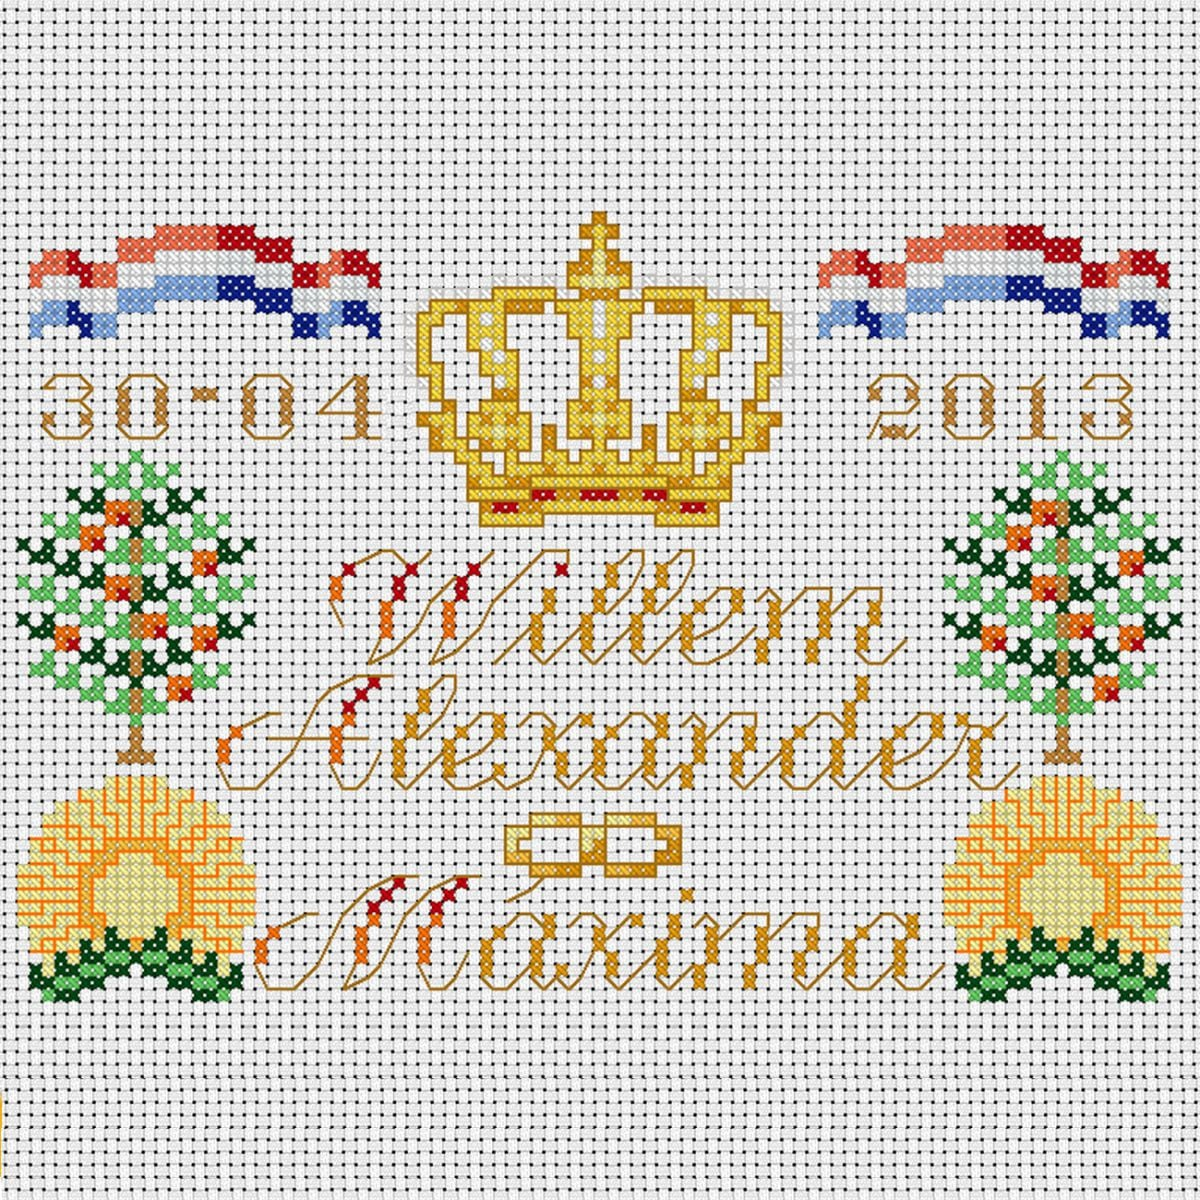 embroidery kit tile of the coronation of king willemalexander